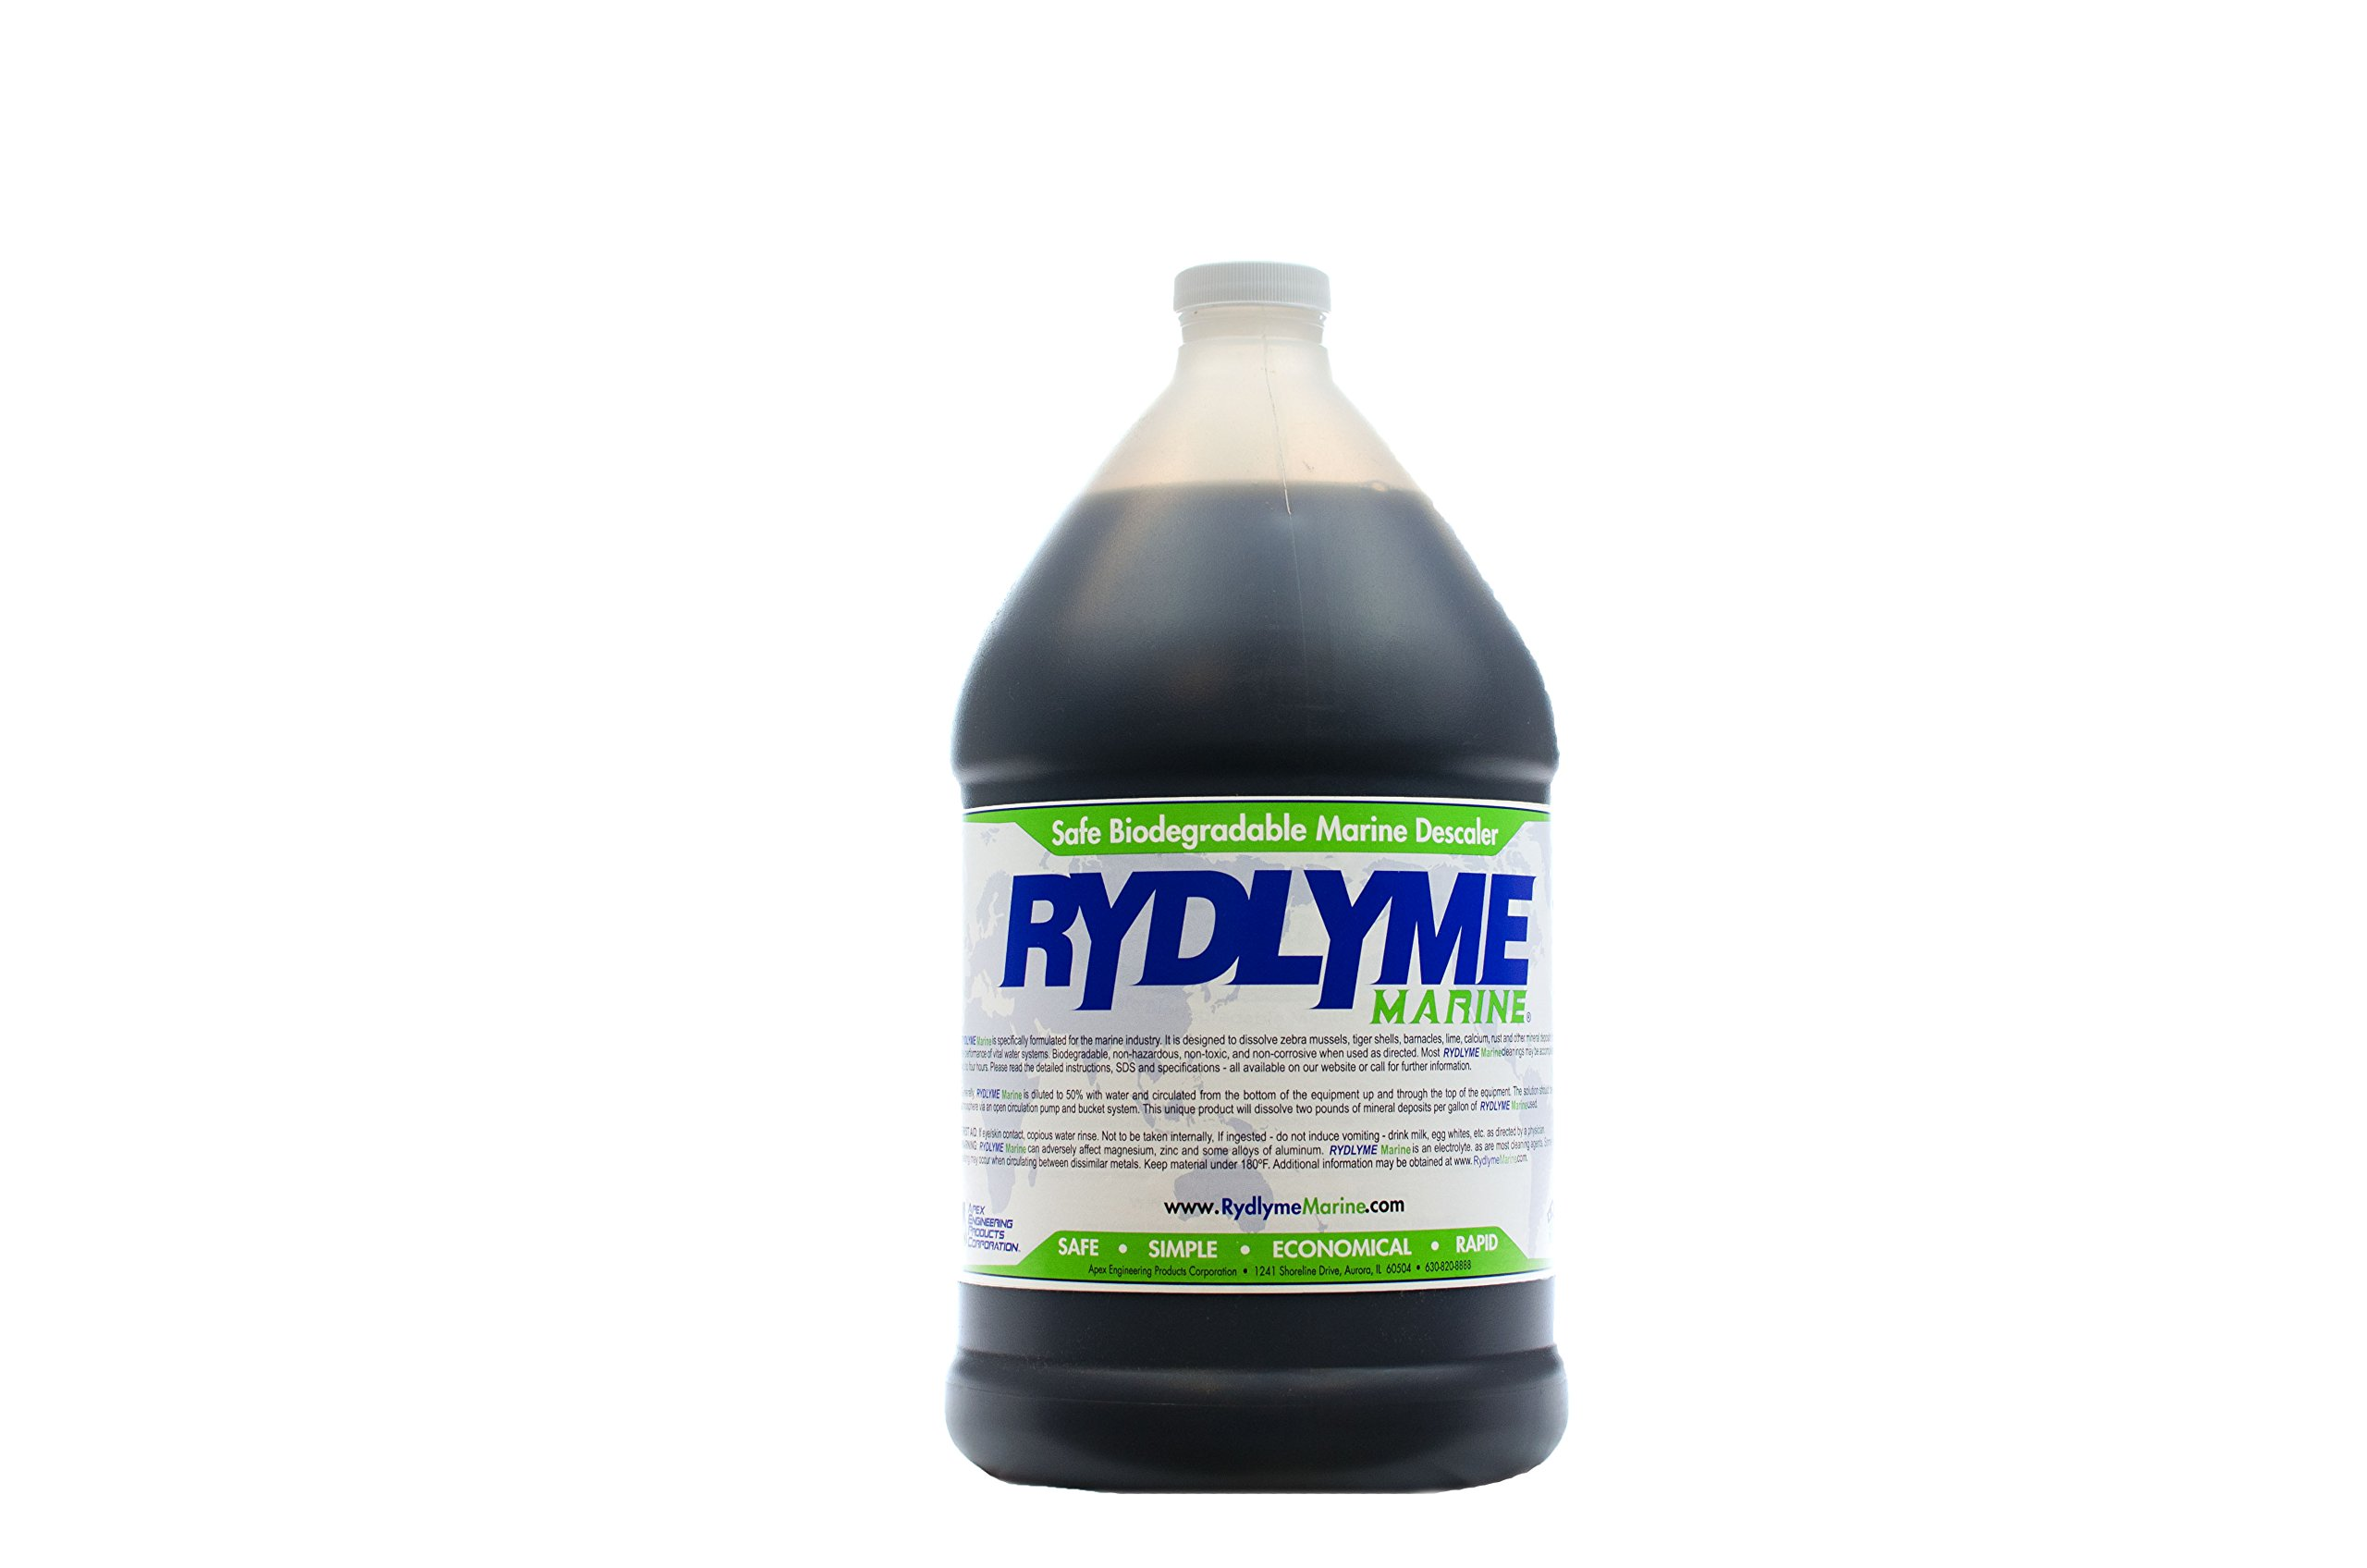 RYDLYME Marine Biodegradable Descaler - 1 Gallon